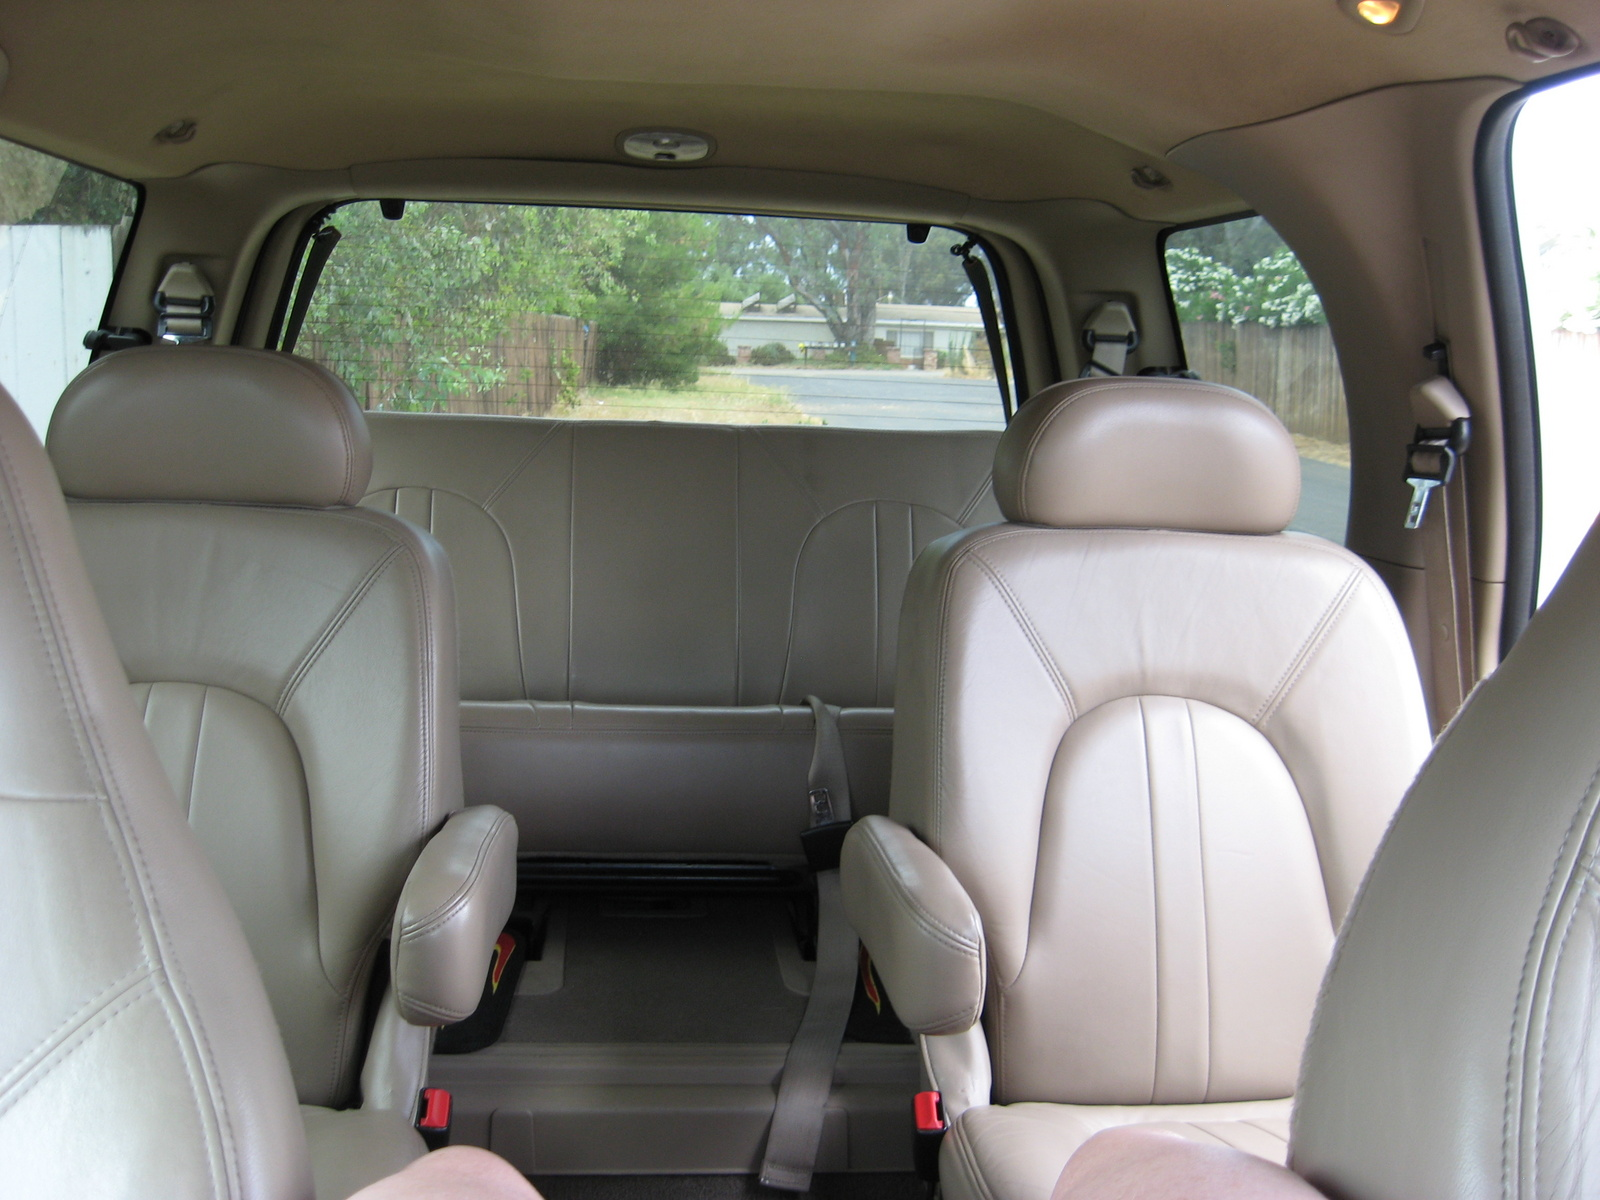 2002 Ford Expedition Interior Pictures Cargurus